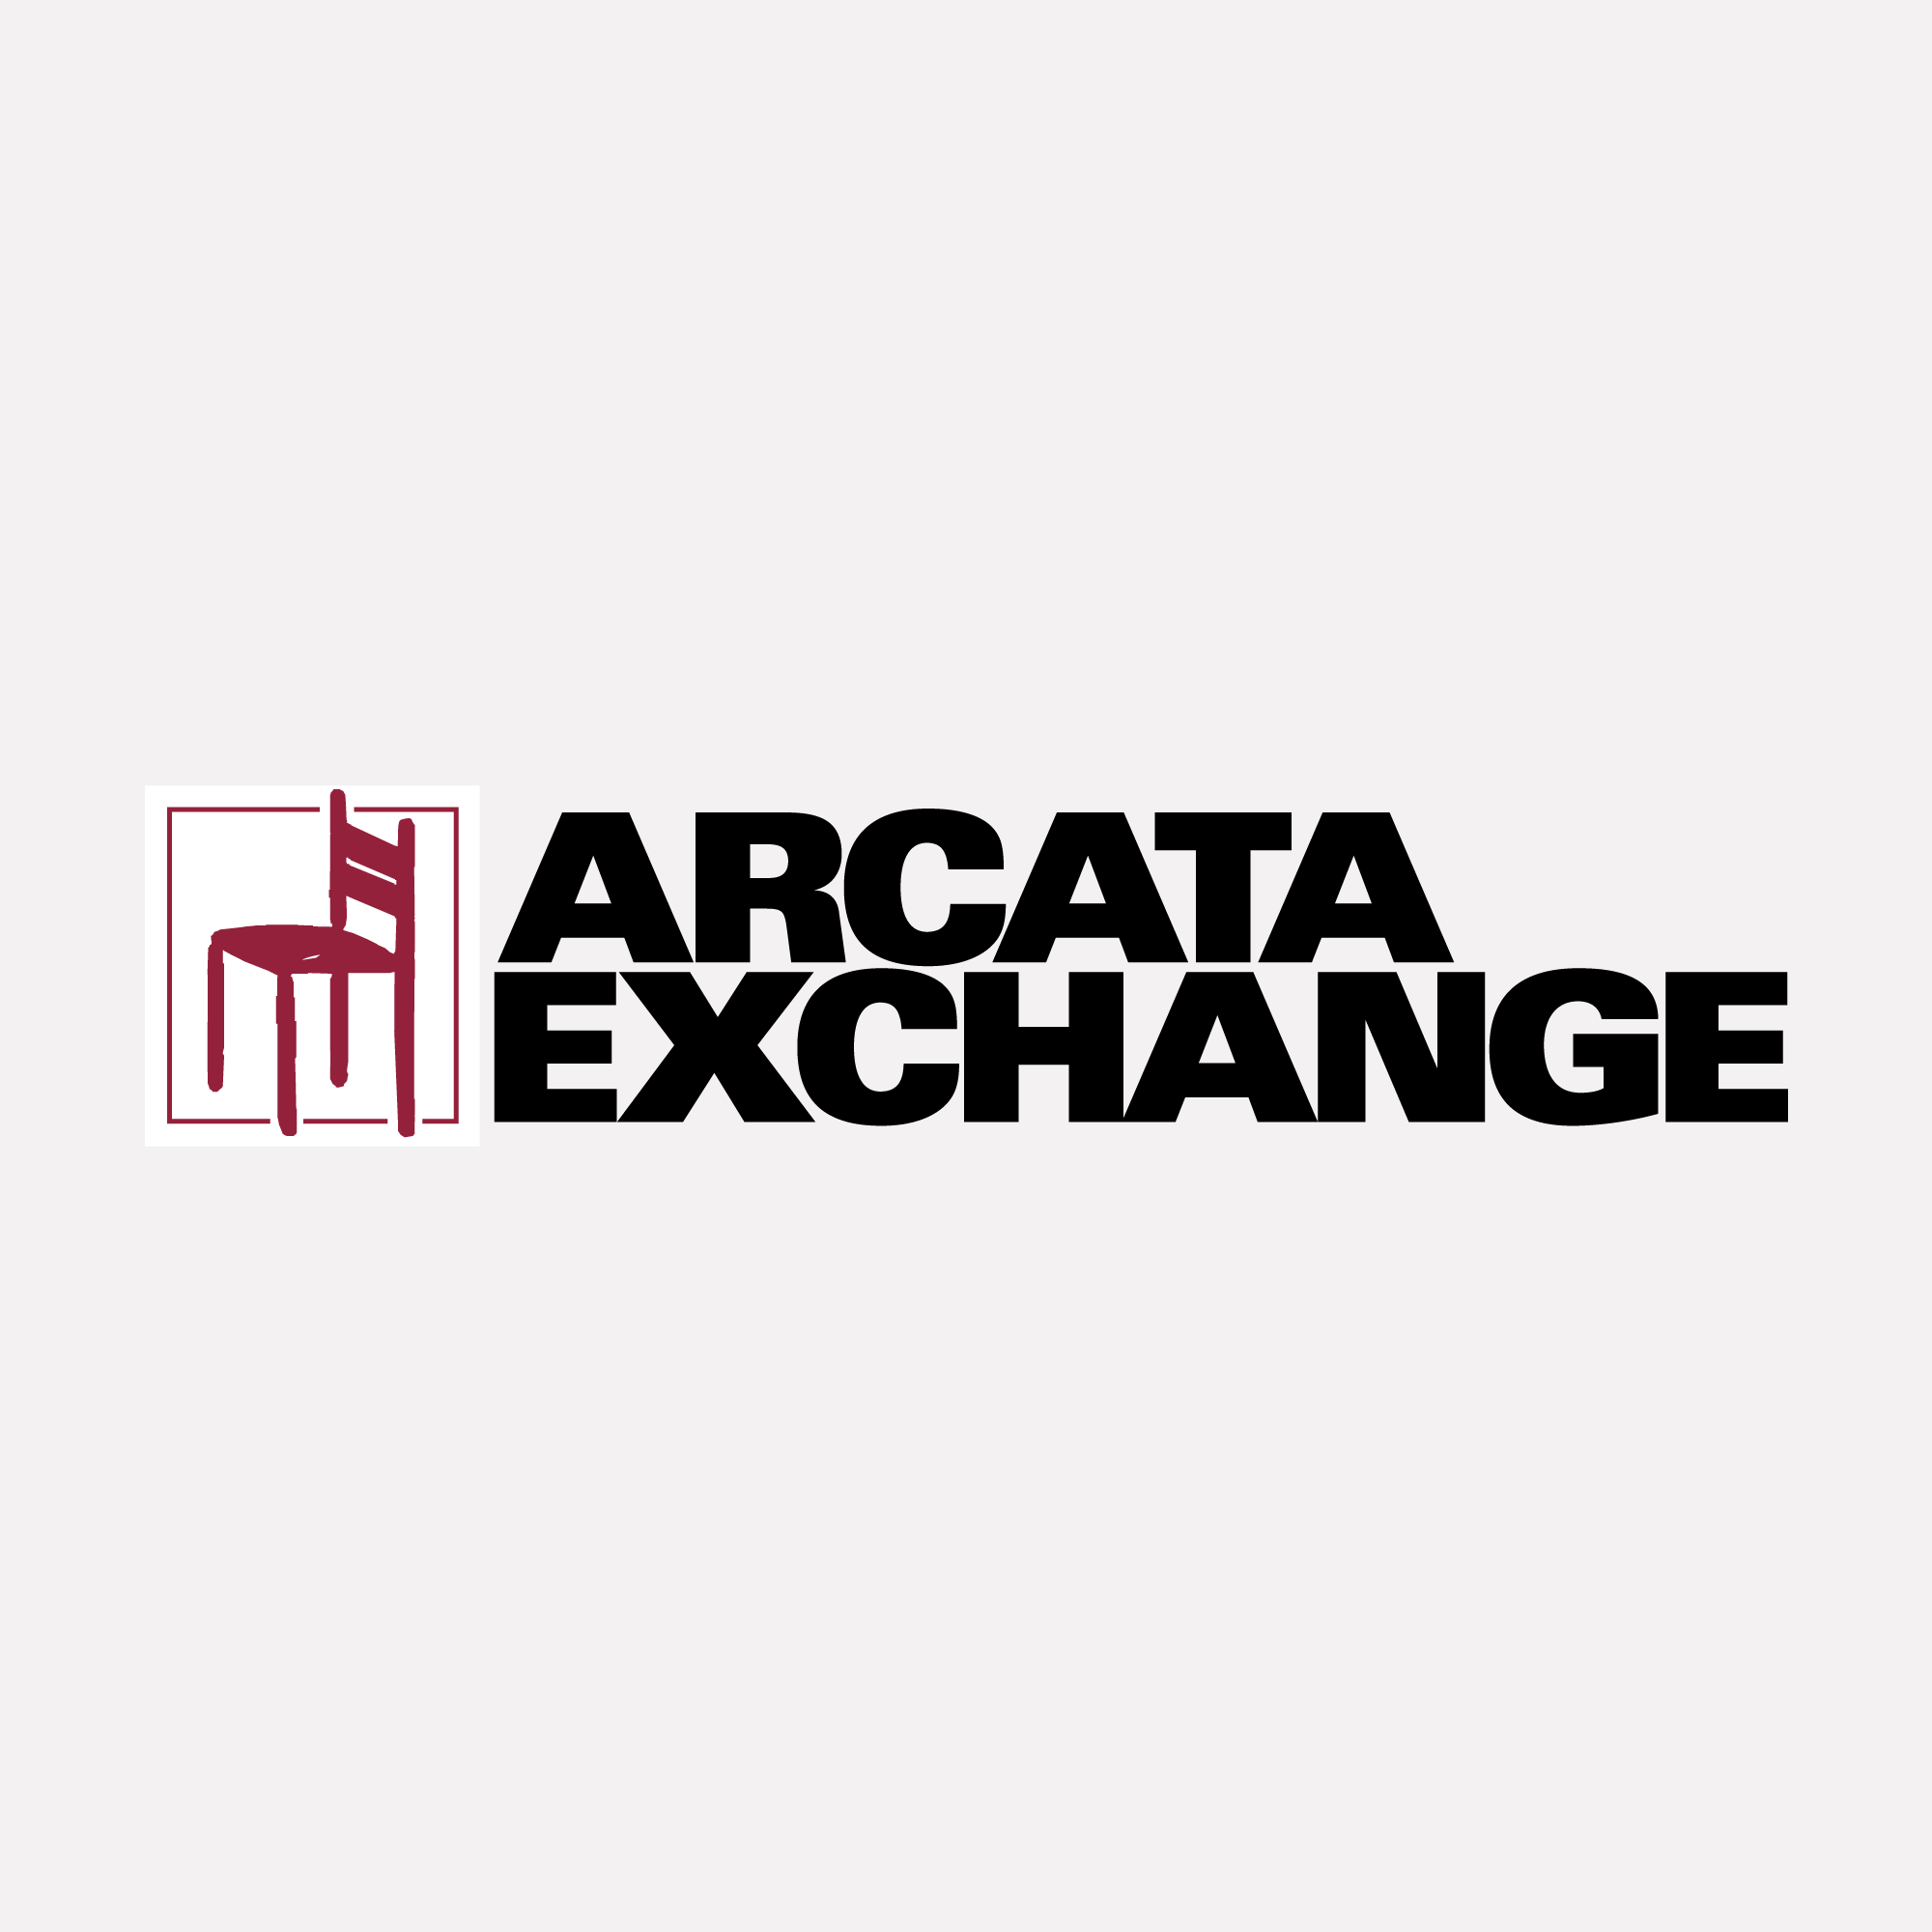 Arcata-Exchange-logo2.png